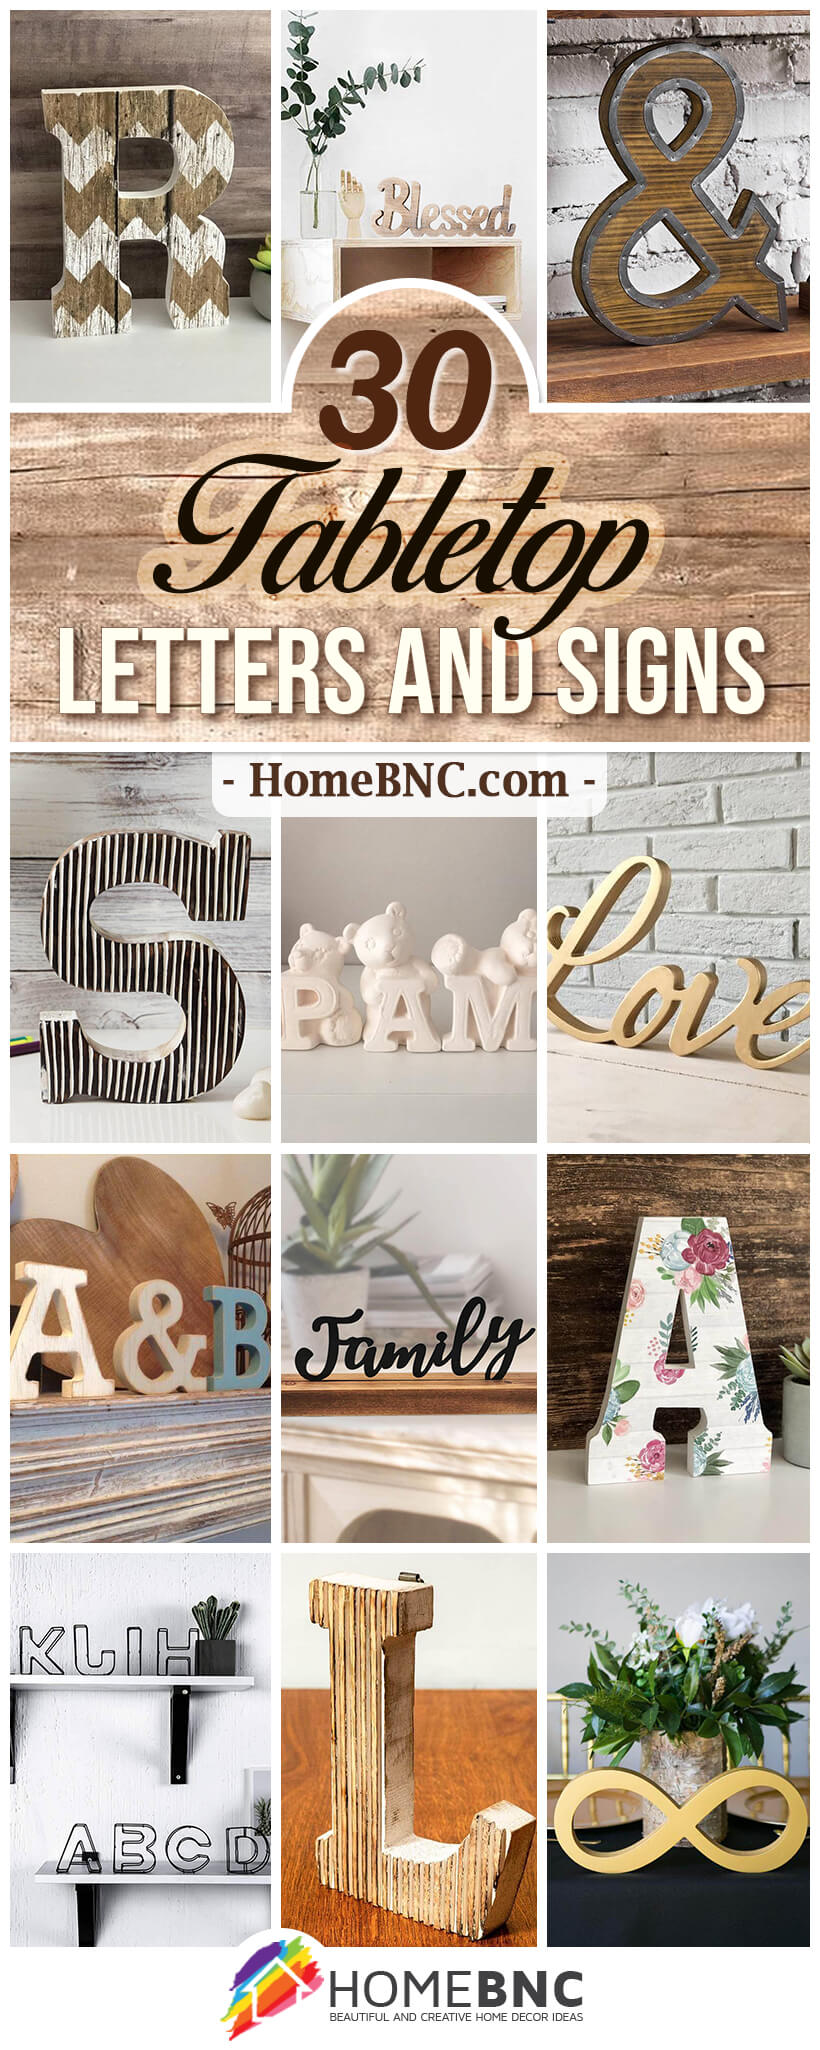 Best Tabletop Letters and Signs